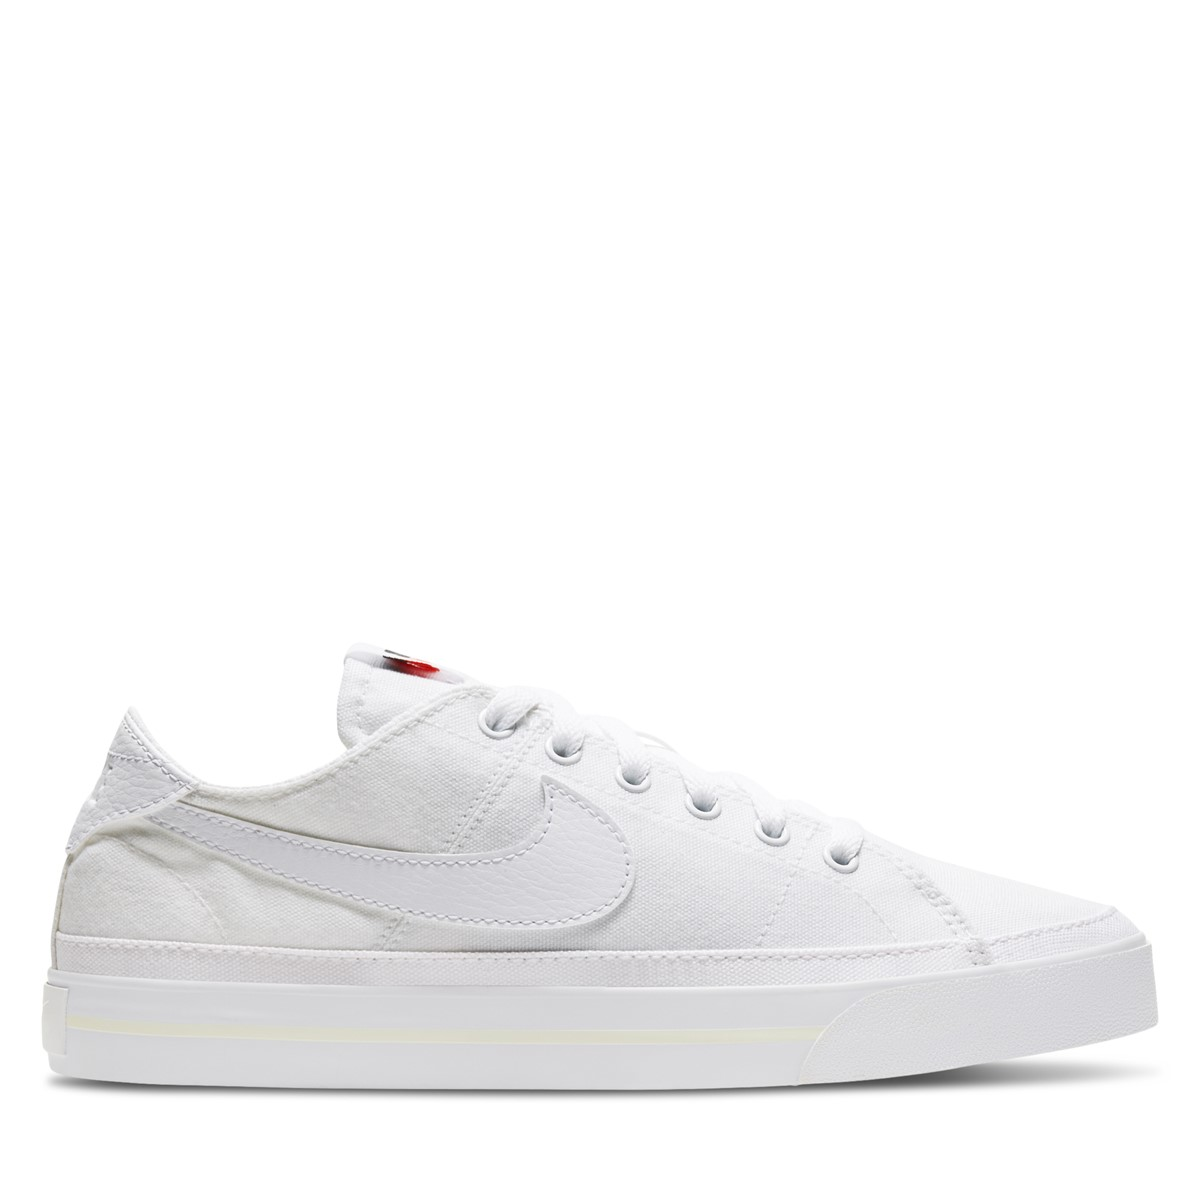 Women's Court Legacy Sneakers in White